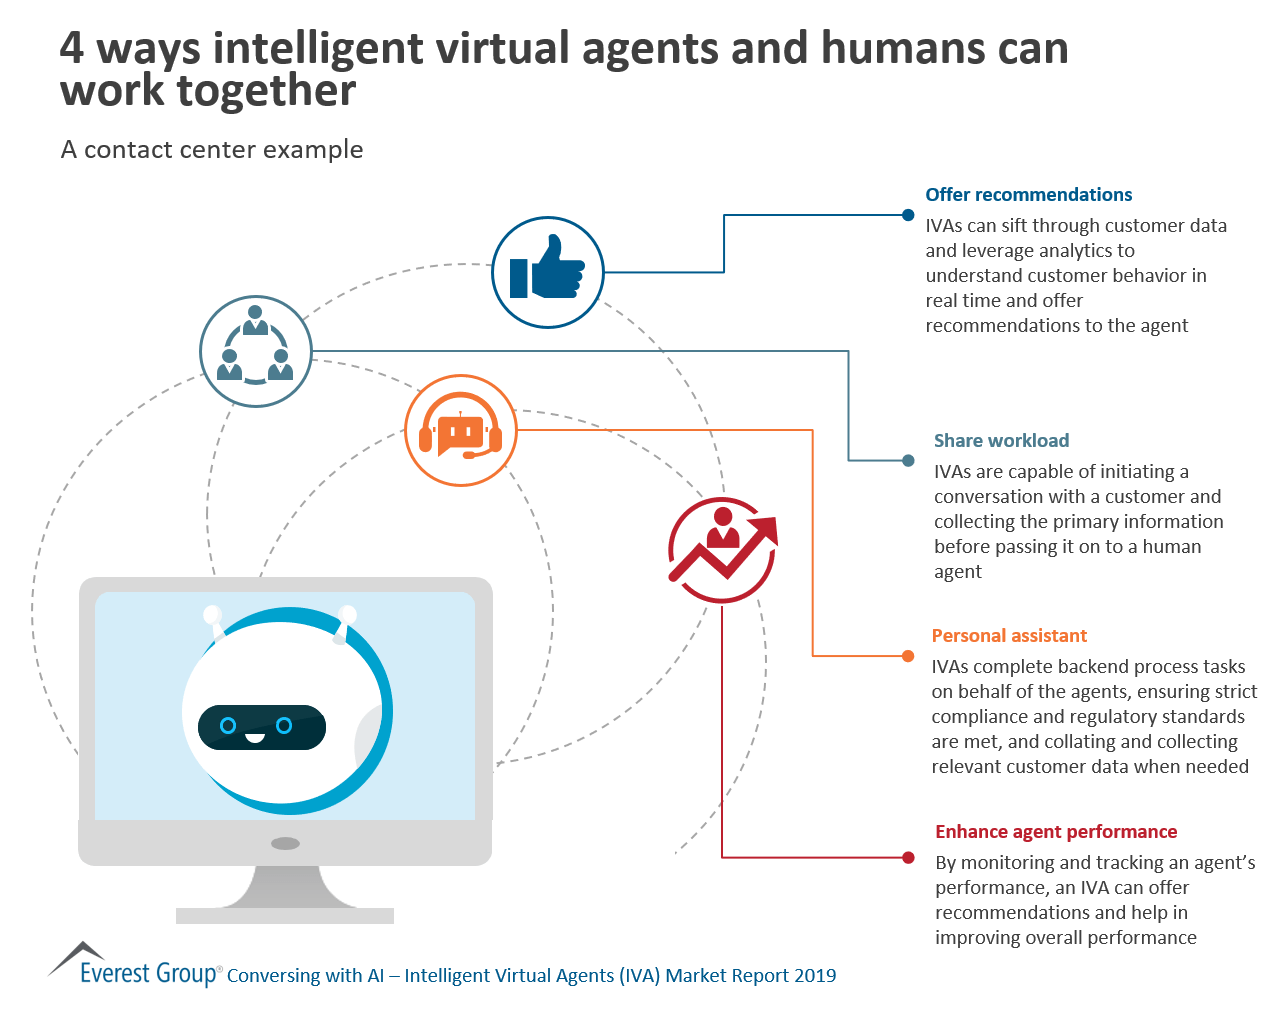 4 ways intelligent virtual agents work with humans